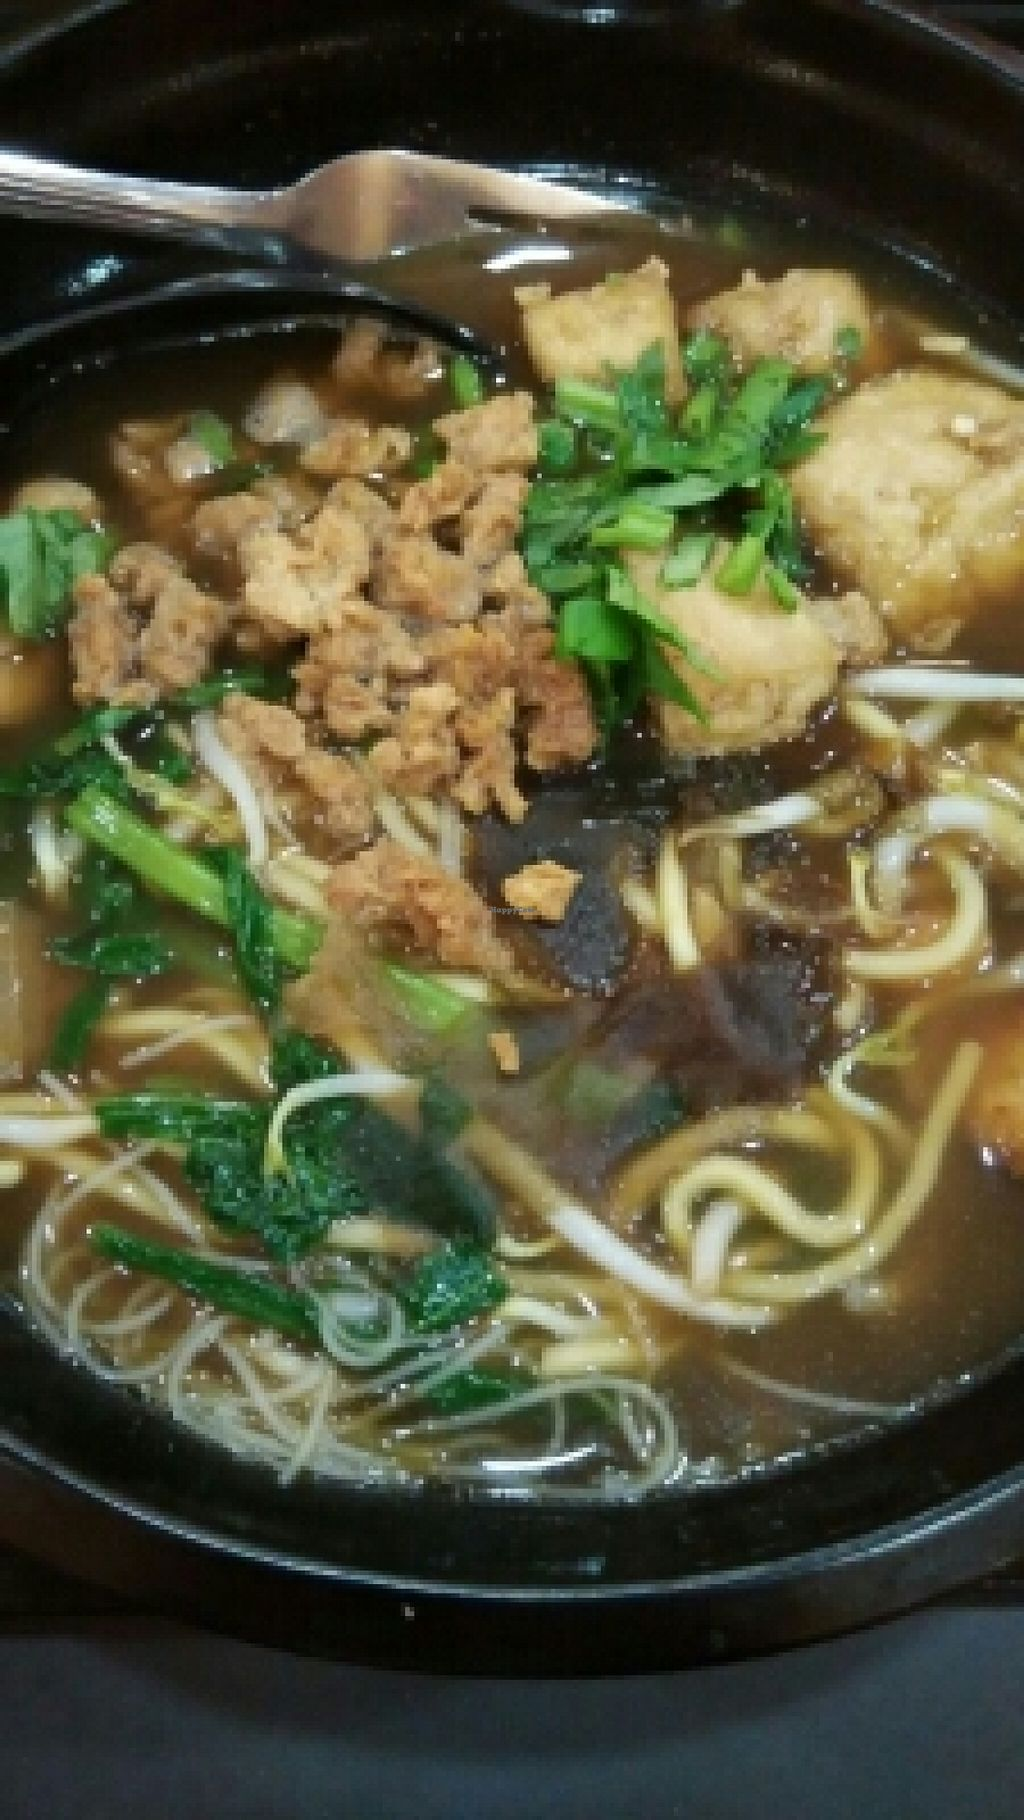 """Photo of CLOSED: vGreen  by <a href=""""/members/profile/JimmySeah"""">JimmySeah</a> <br/>prawn noodle without mock prawn <br/> March 23, 2016  - <a href='/contact/abuse/image/64081/141102'>Report</a>"""